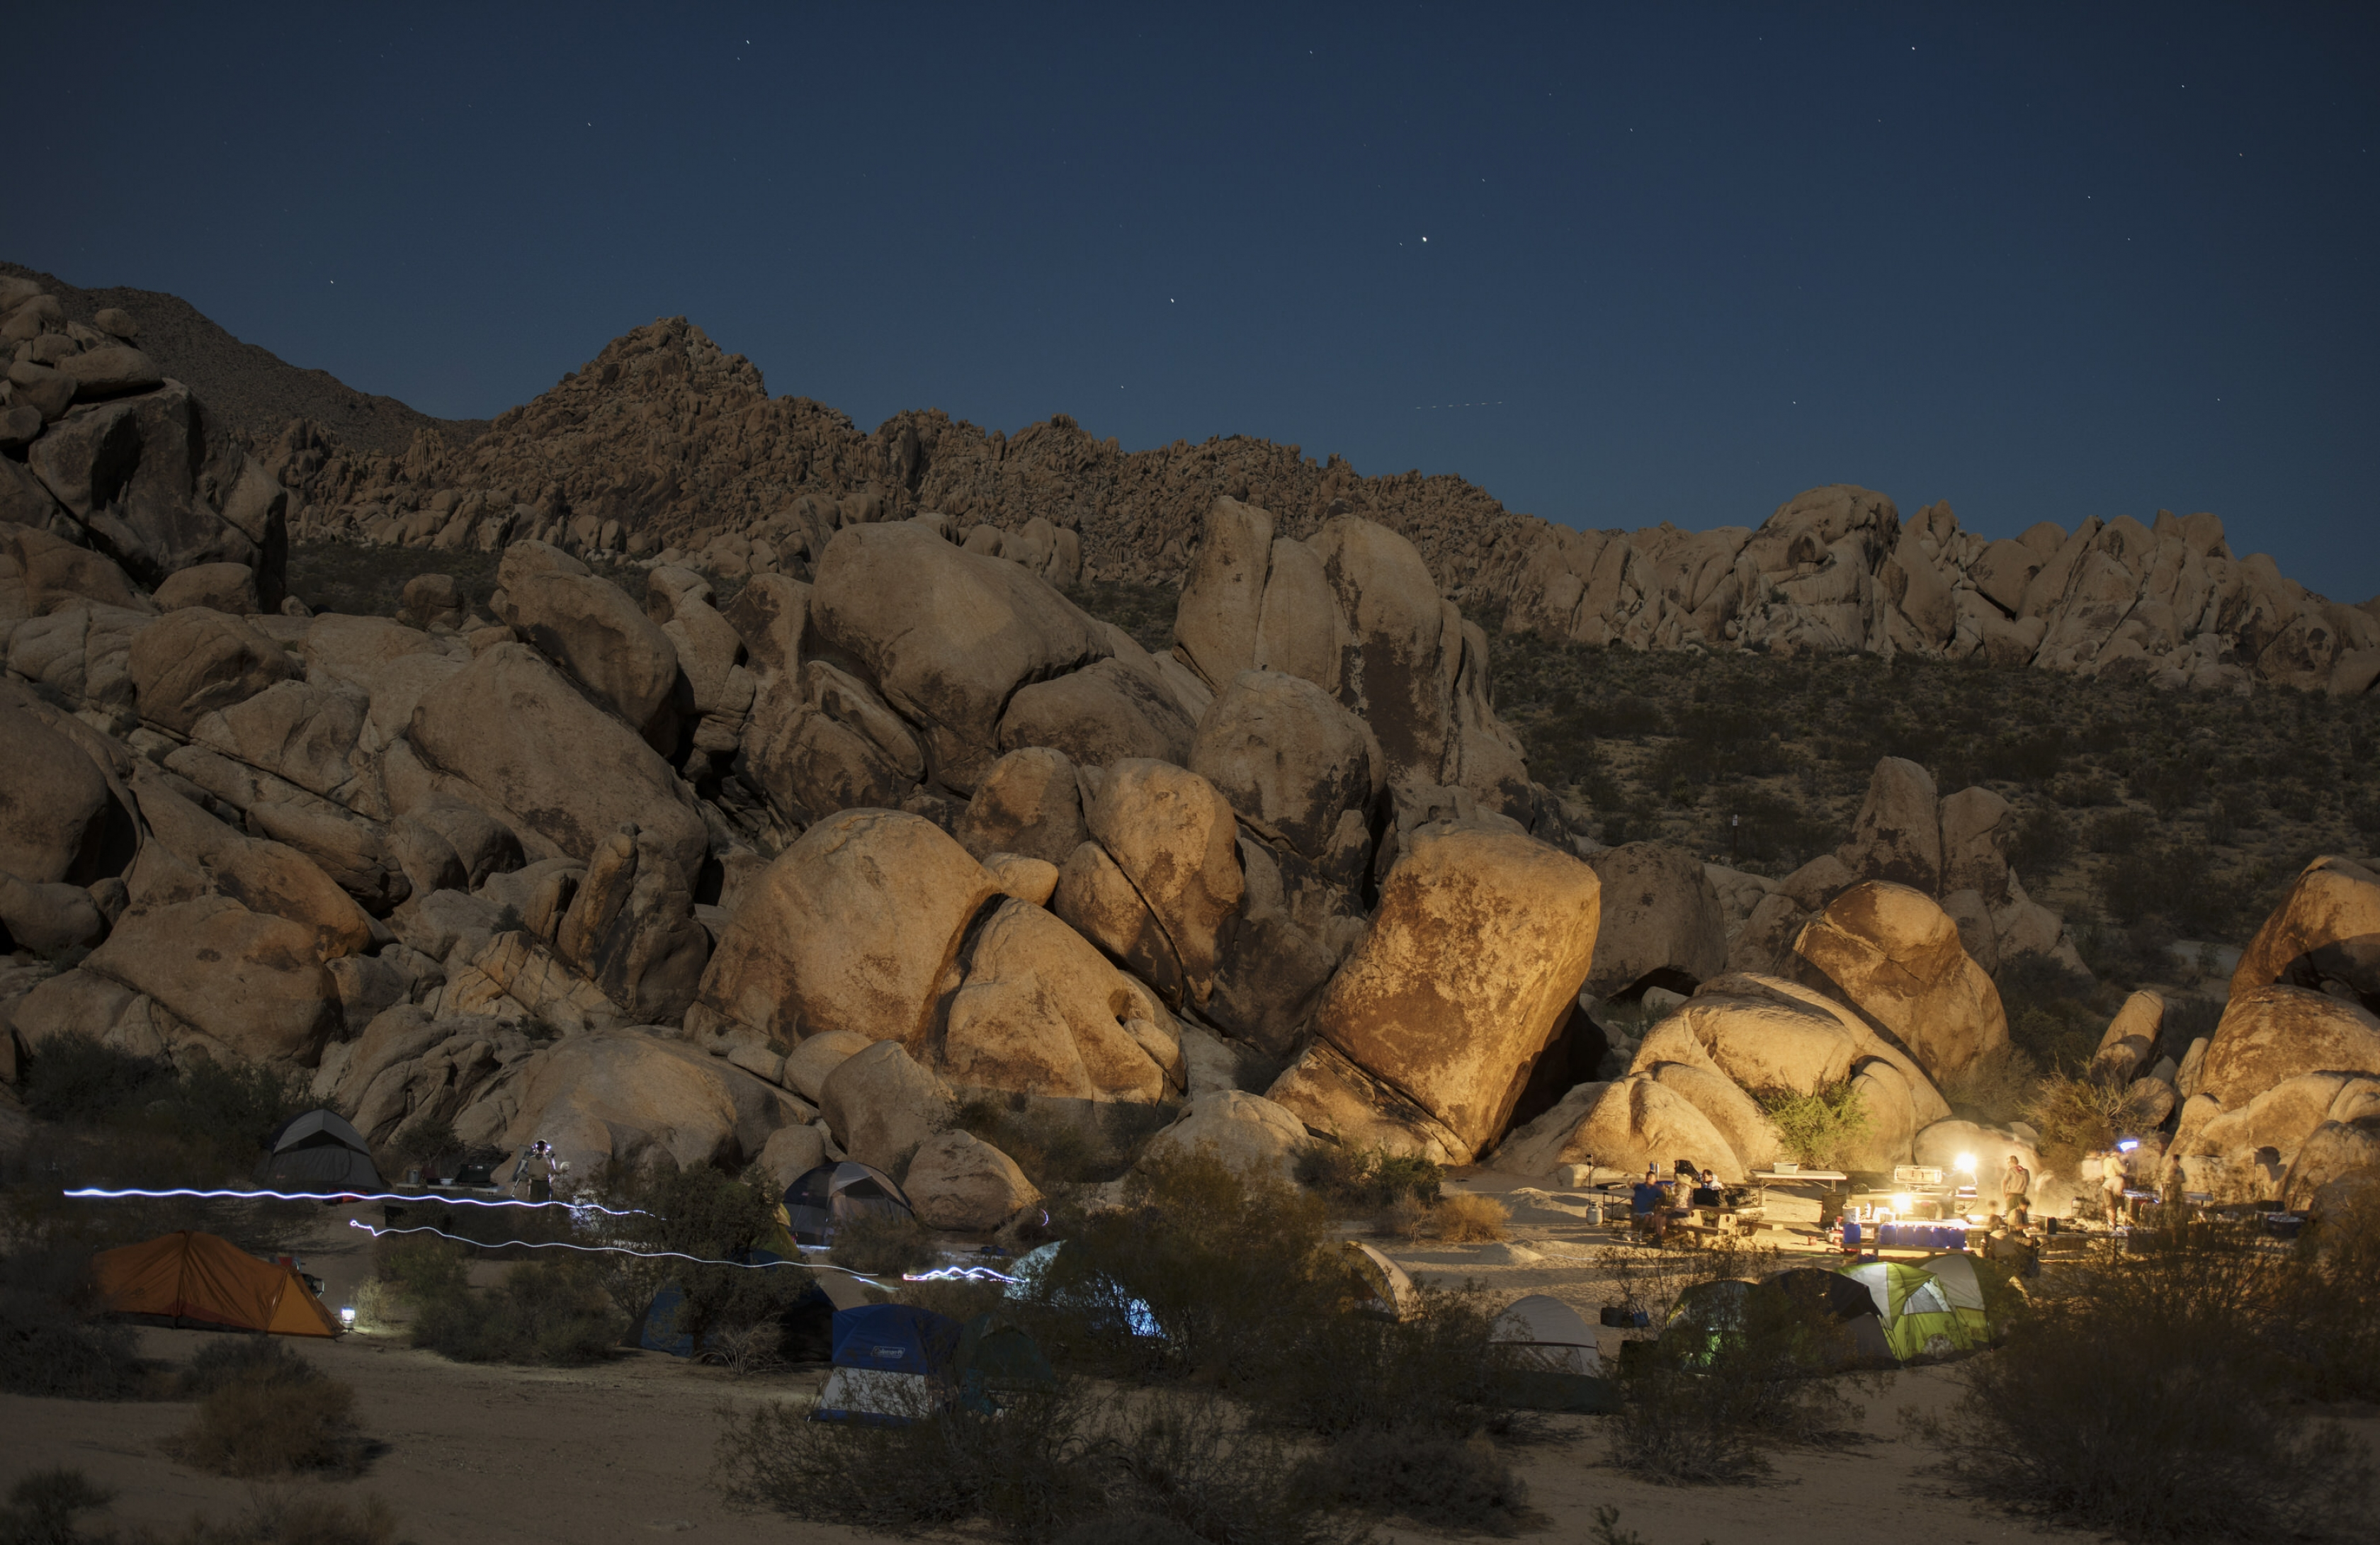 Illuminated campground under a starry night at Joshua Tree National Park